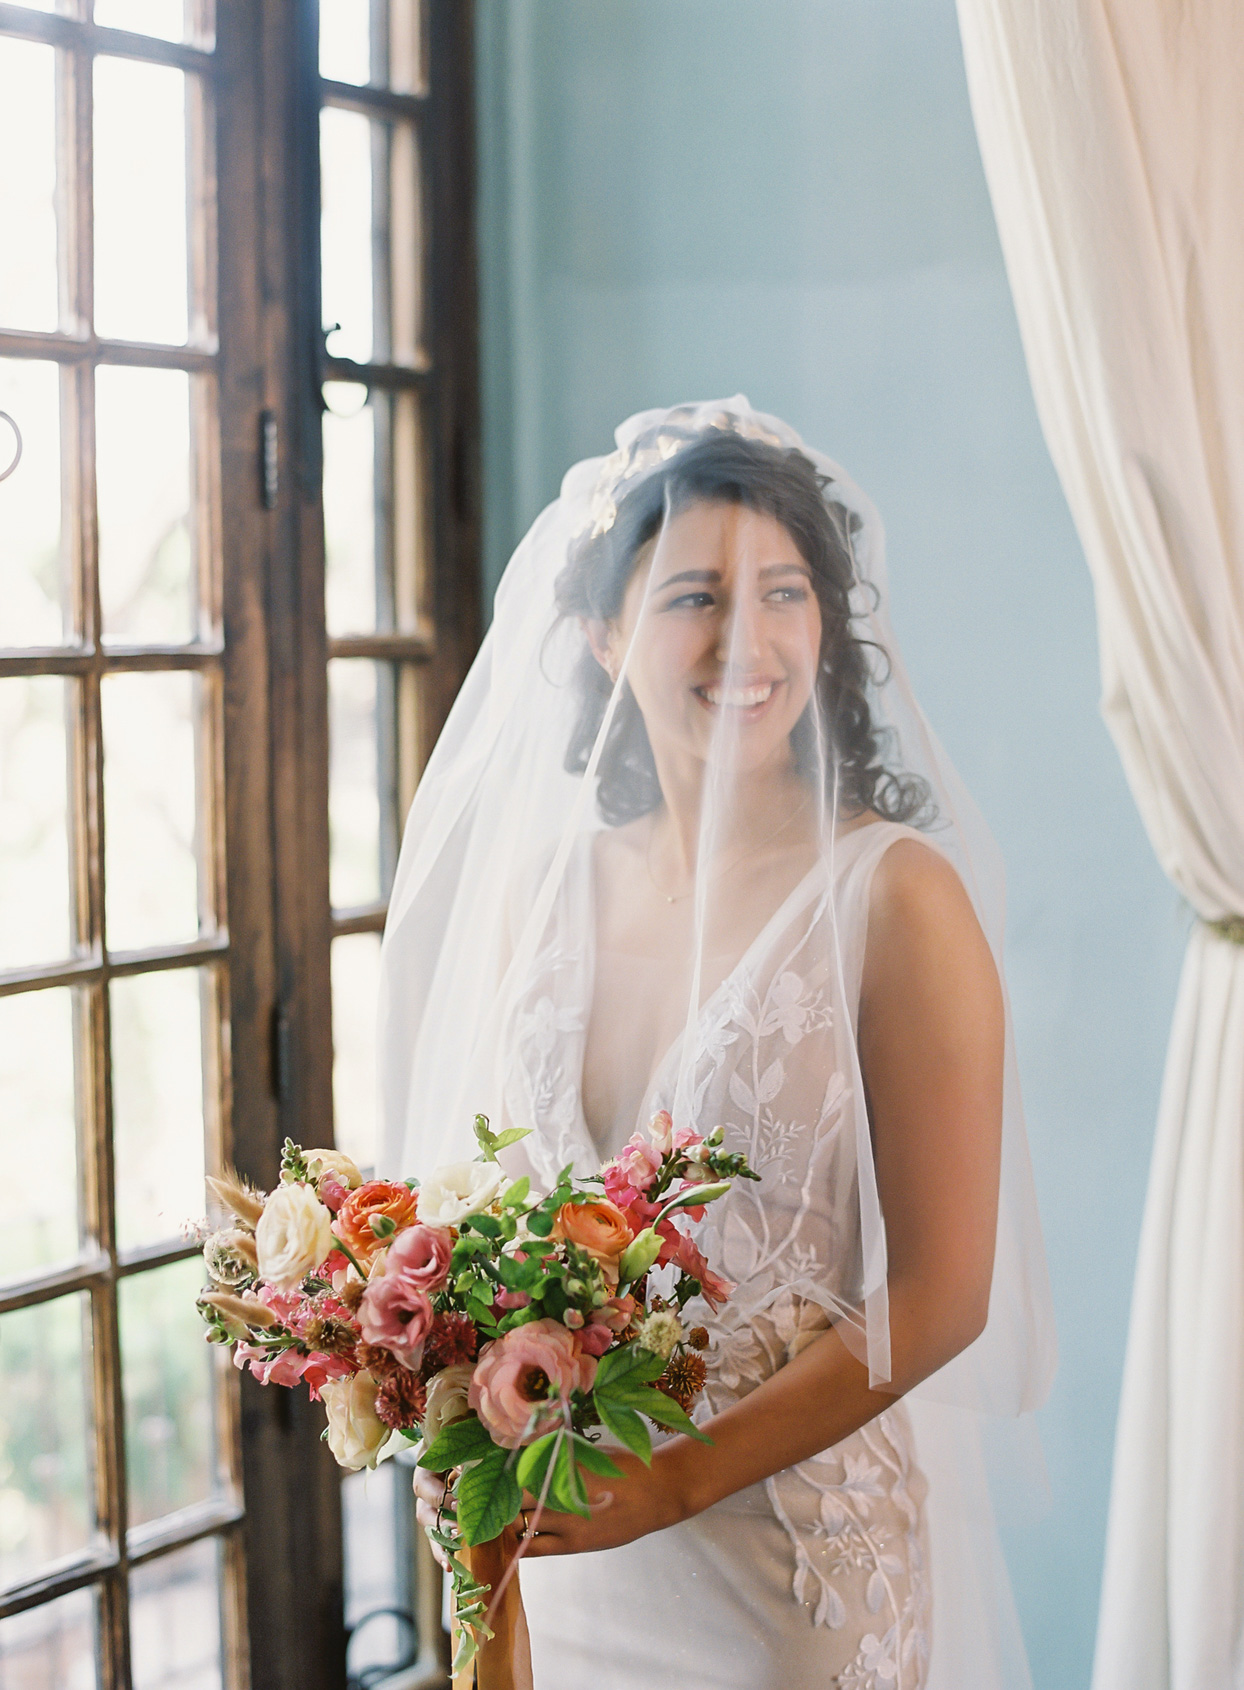 bride holding pink and orange floral bouquet standing by window